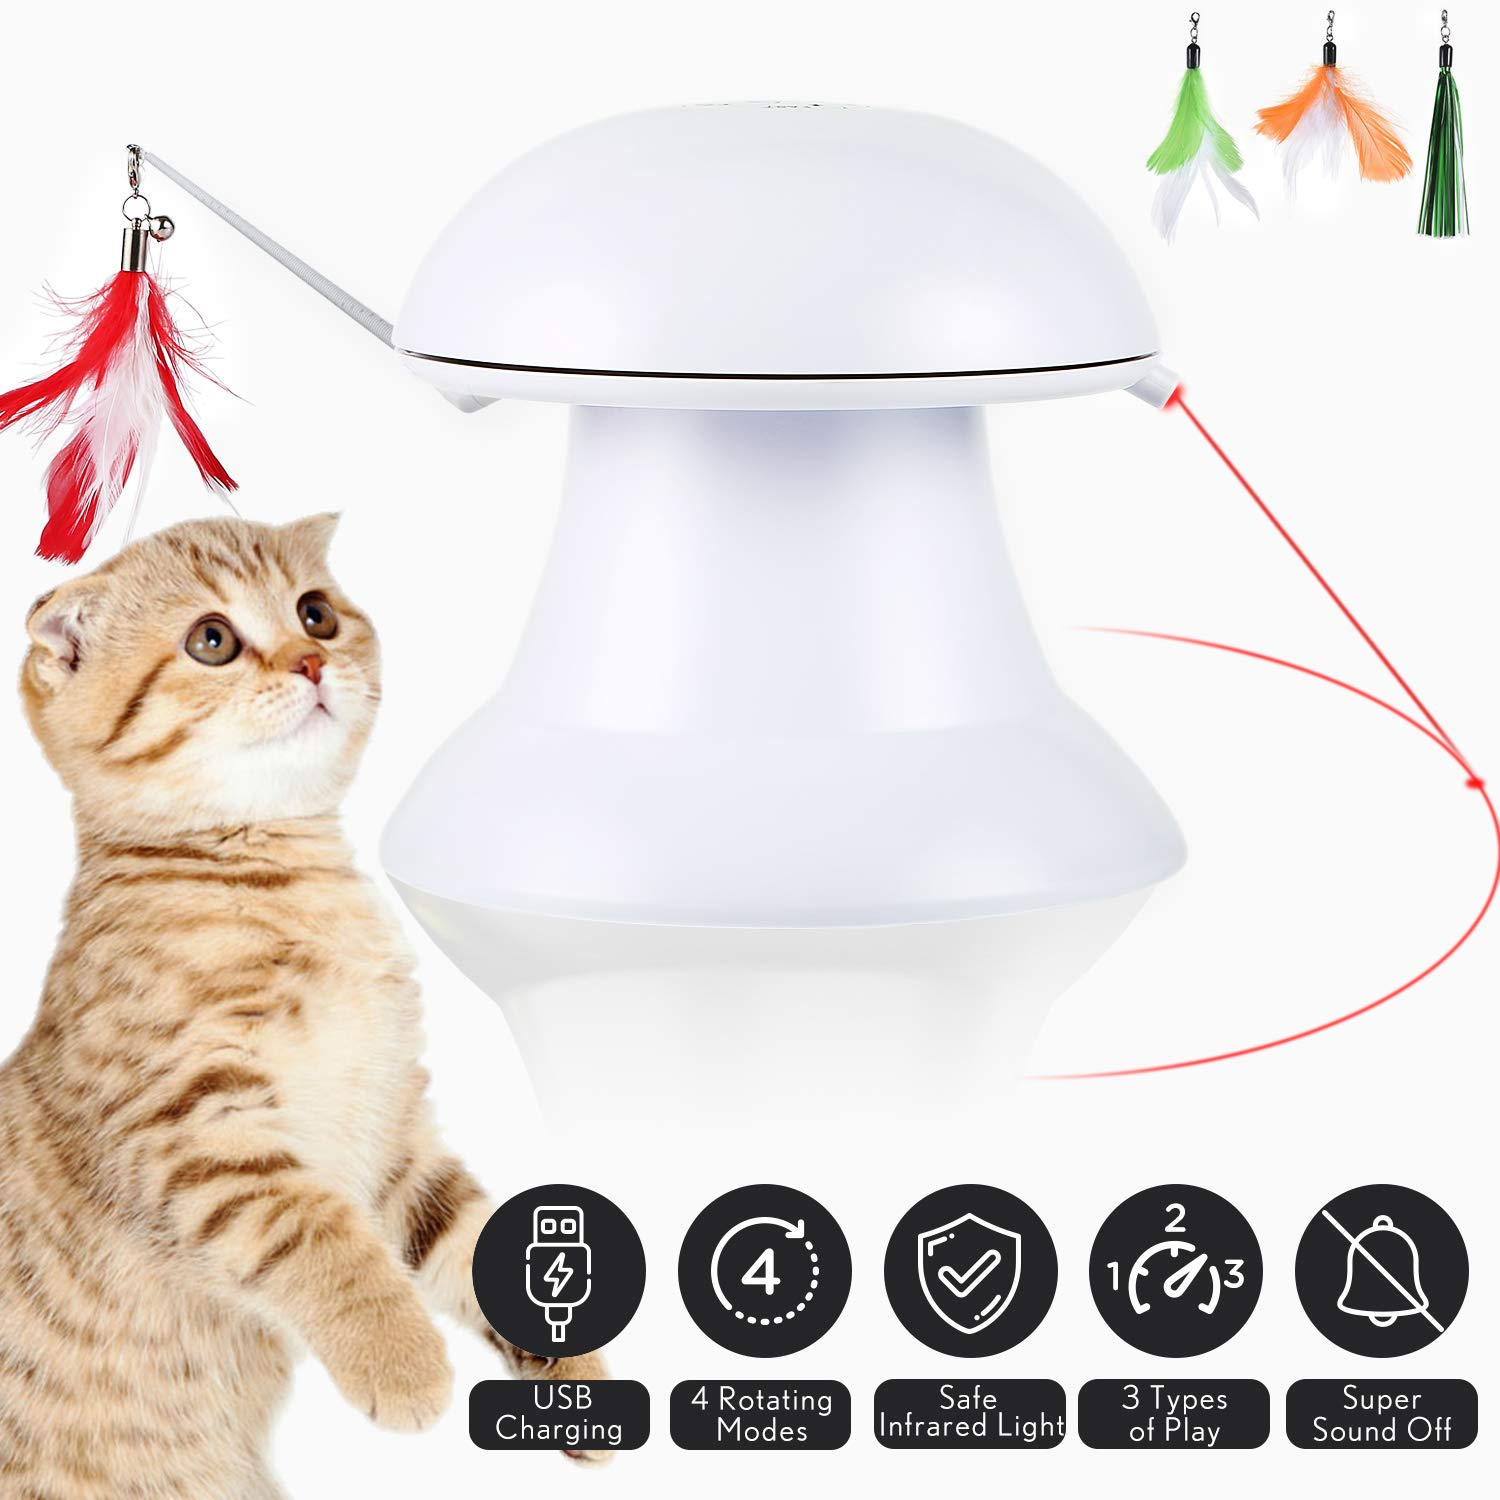 Upgraded Cat Laser Toy,Cat Toys Interactive,2 in 1 Automatic Cat Toy,Moving Feather Toy with Laser Pointer,Electronic Cat Chaser Toy Indoor,Auto Rotating Light,Multiple Feather Hangings,3 Ways to Play by petnf